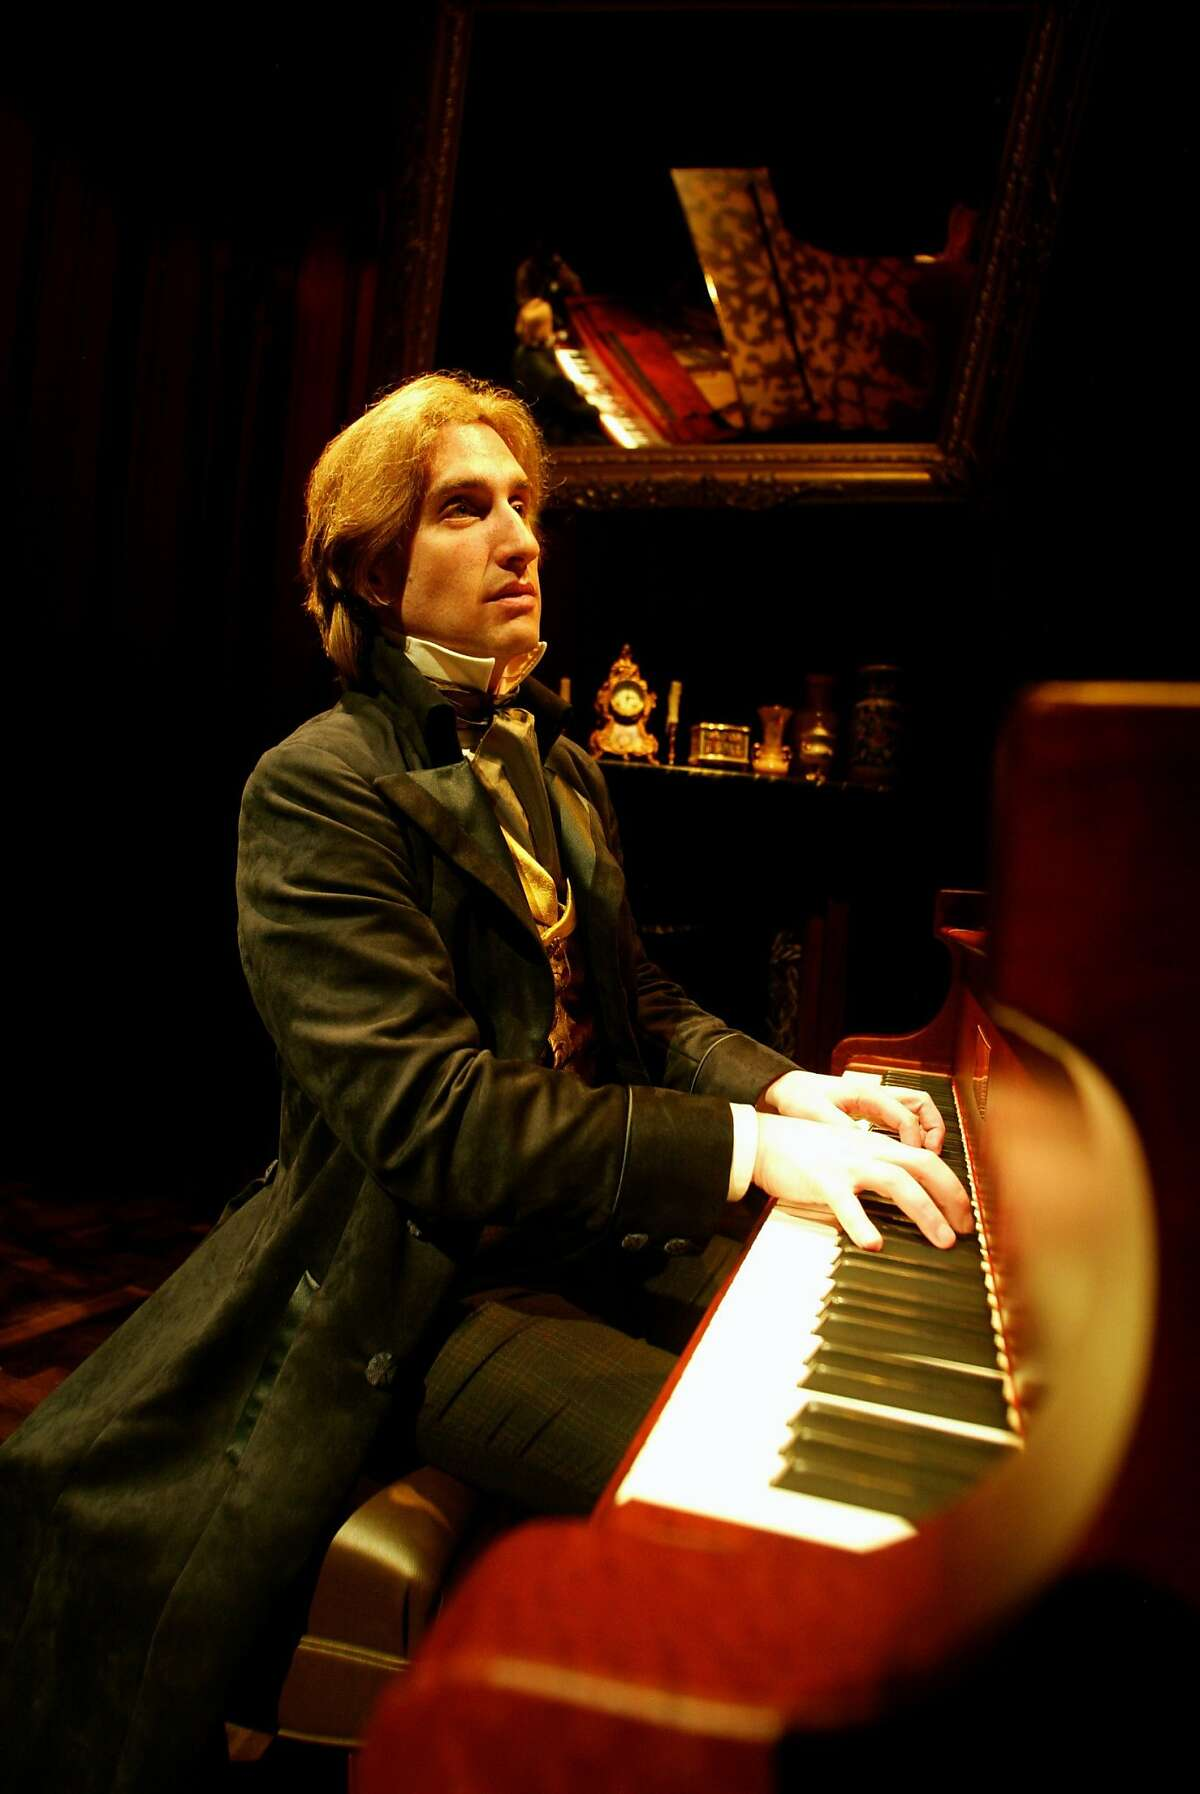 Hershey Felder as the great Romantic composer in his solo piece